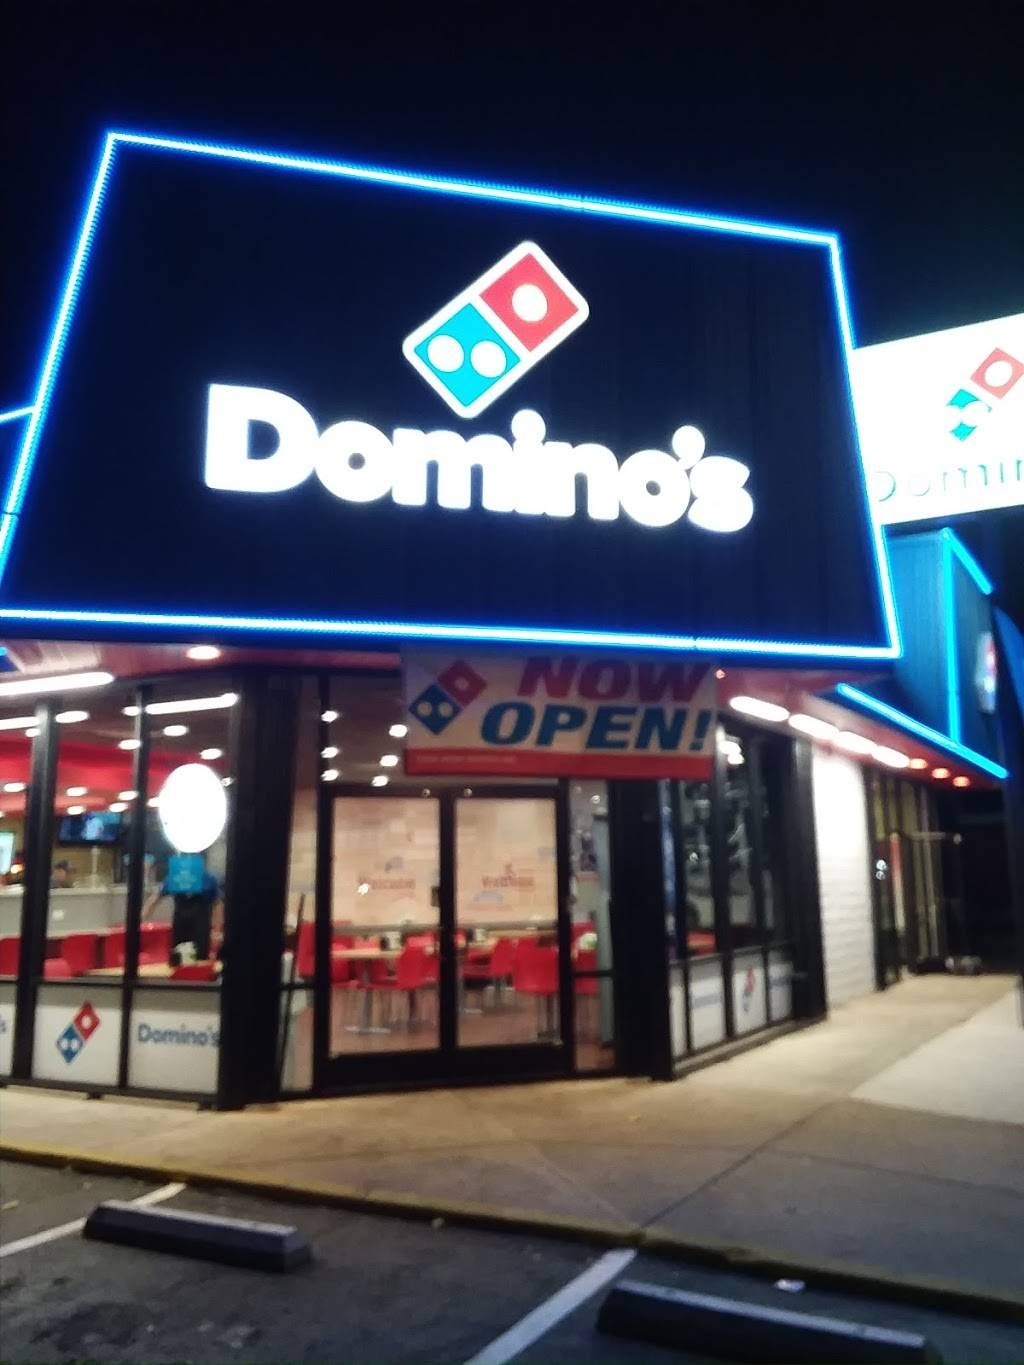 Dominos Pizza | meal delivery | 1045 N Wilson Way, Stockton, CA 95205, USA | 2092997272 OR +1 209-299-7272